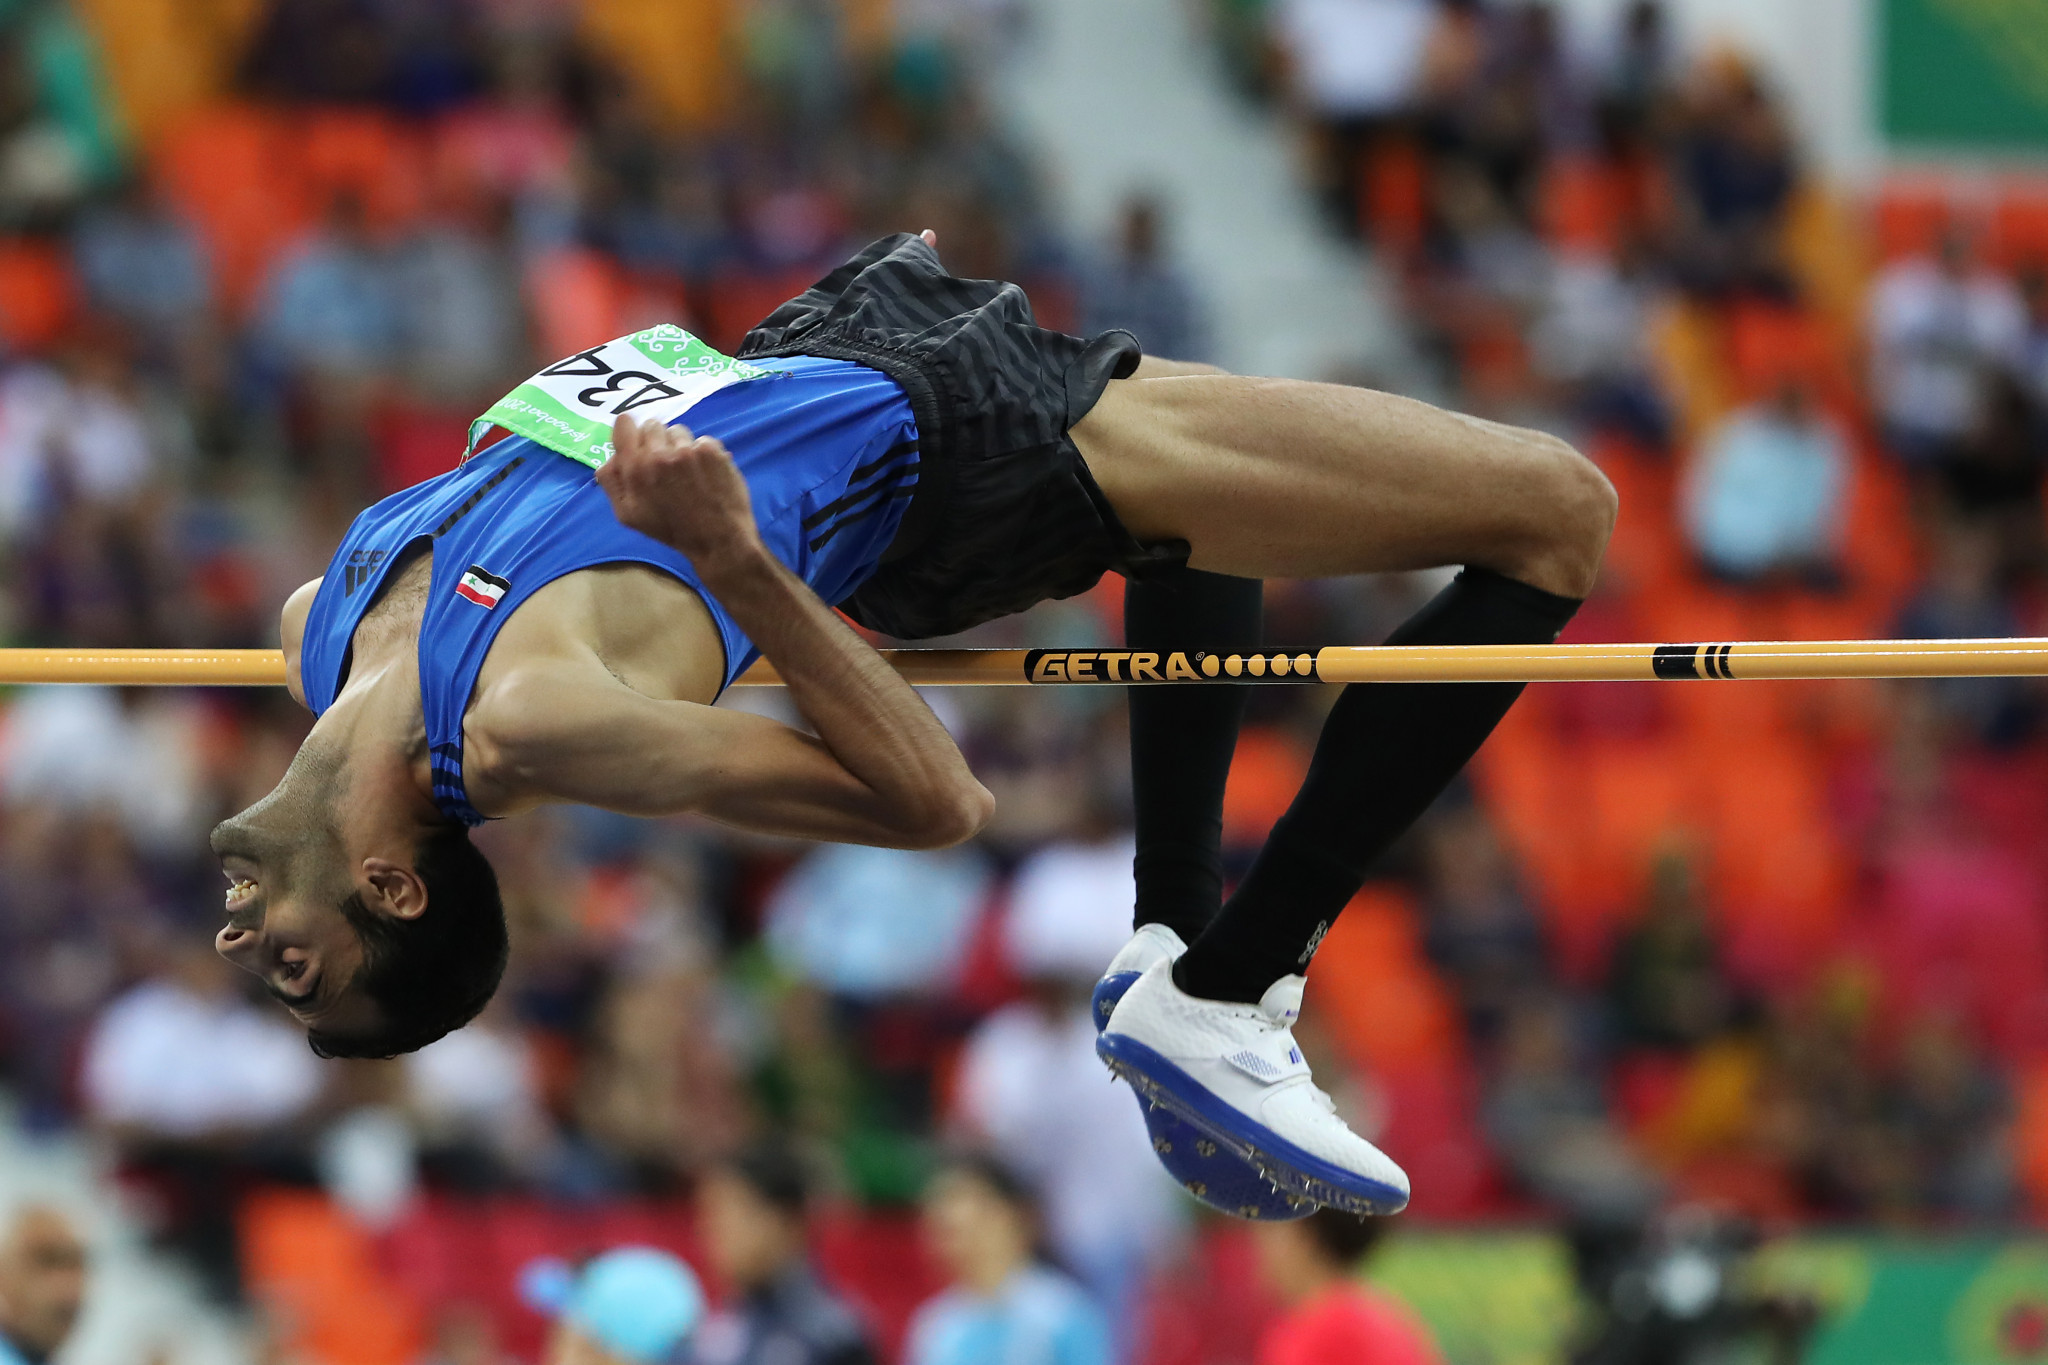 Syria's Majd Eddin Ghazal achieved a Games record in the men's high jump final on the last day of Ashgabat 2017 indoor athletics action ©Ashgabat 2017/Nikita Bassov/Laurel Photo Services